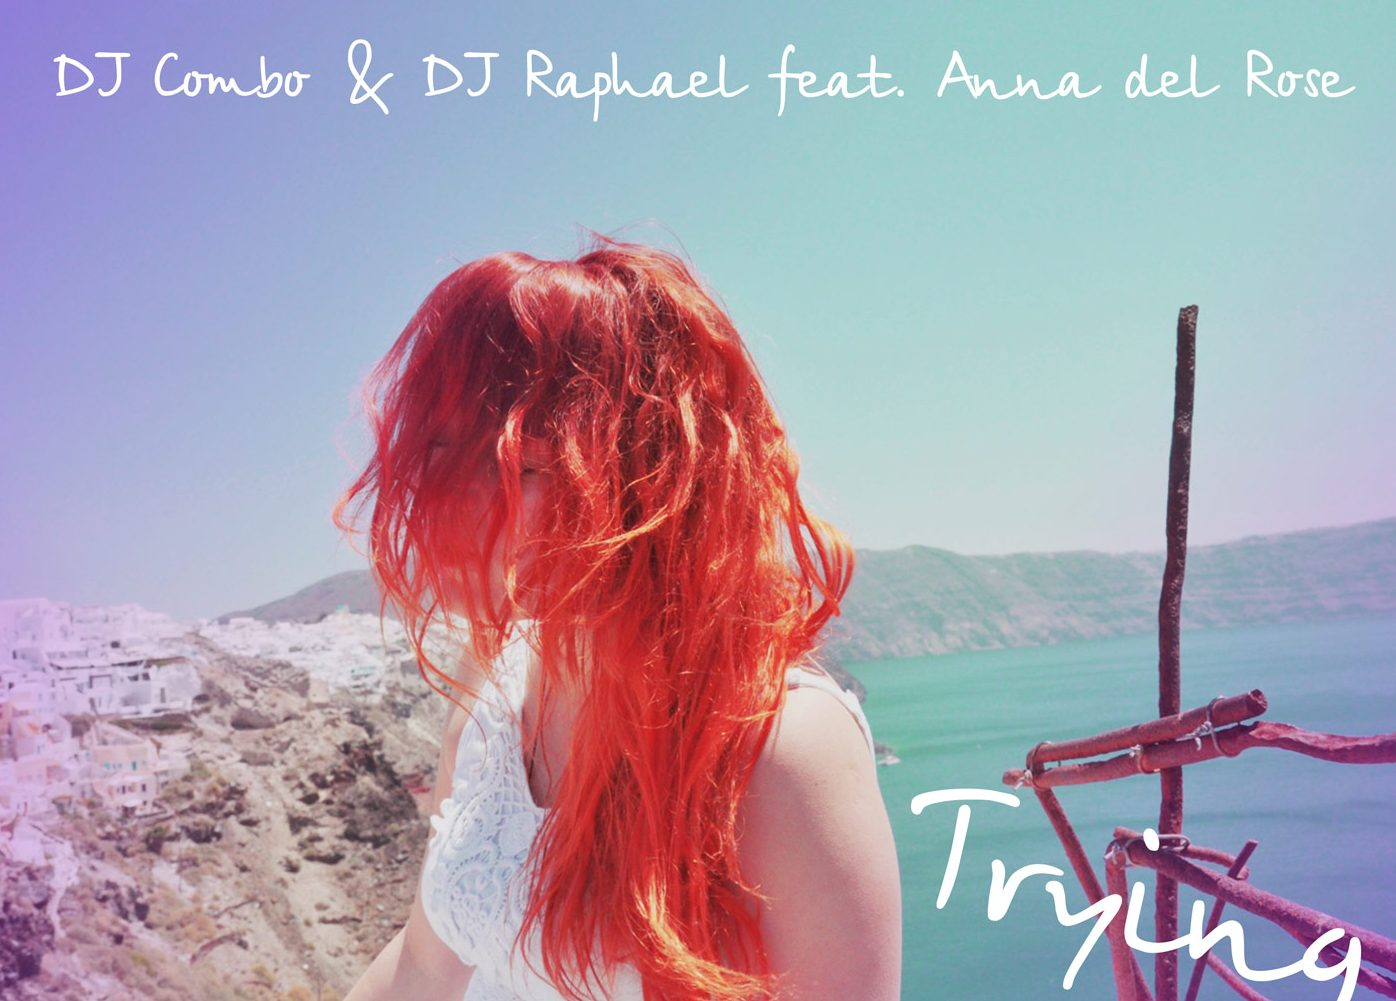 """DJ Combo and DJ Raphael feat. Anna del Rose  """" Trying"""" (Single)"""